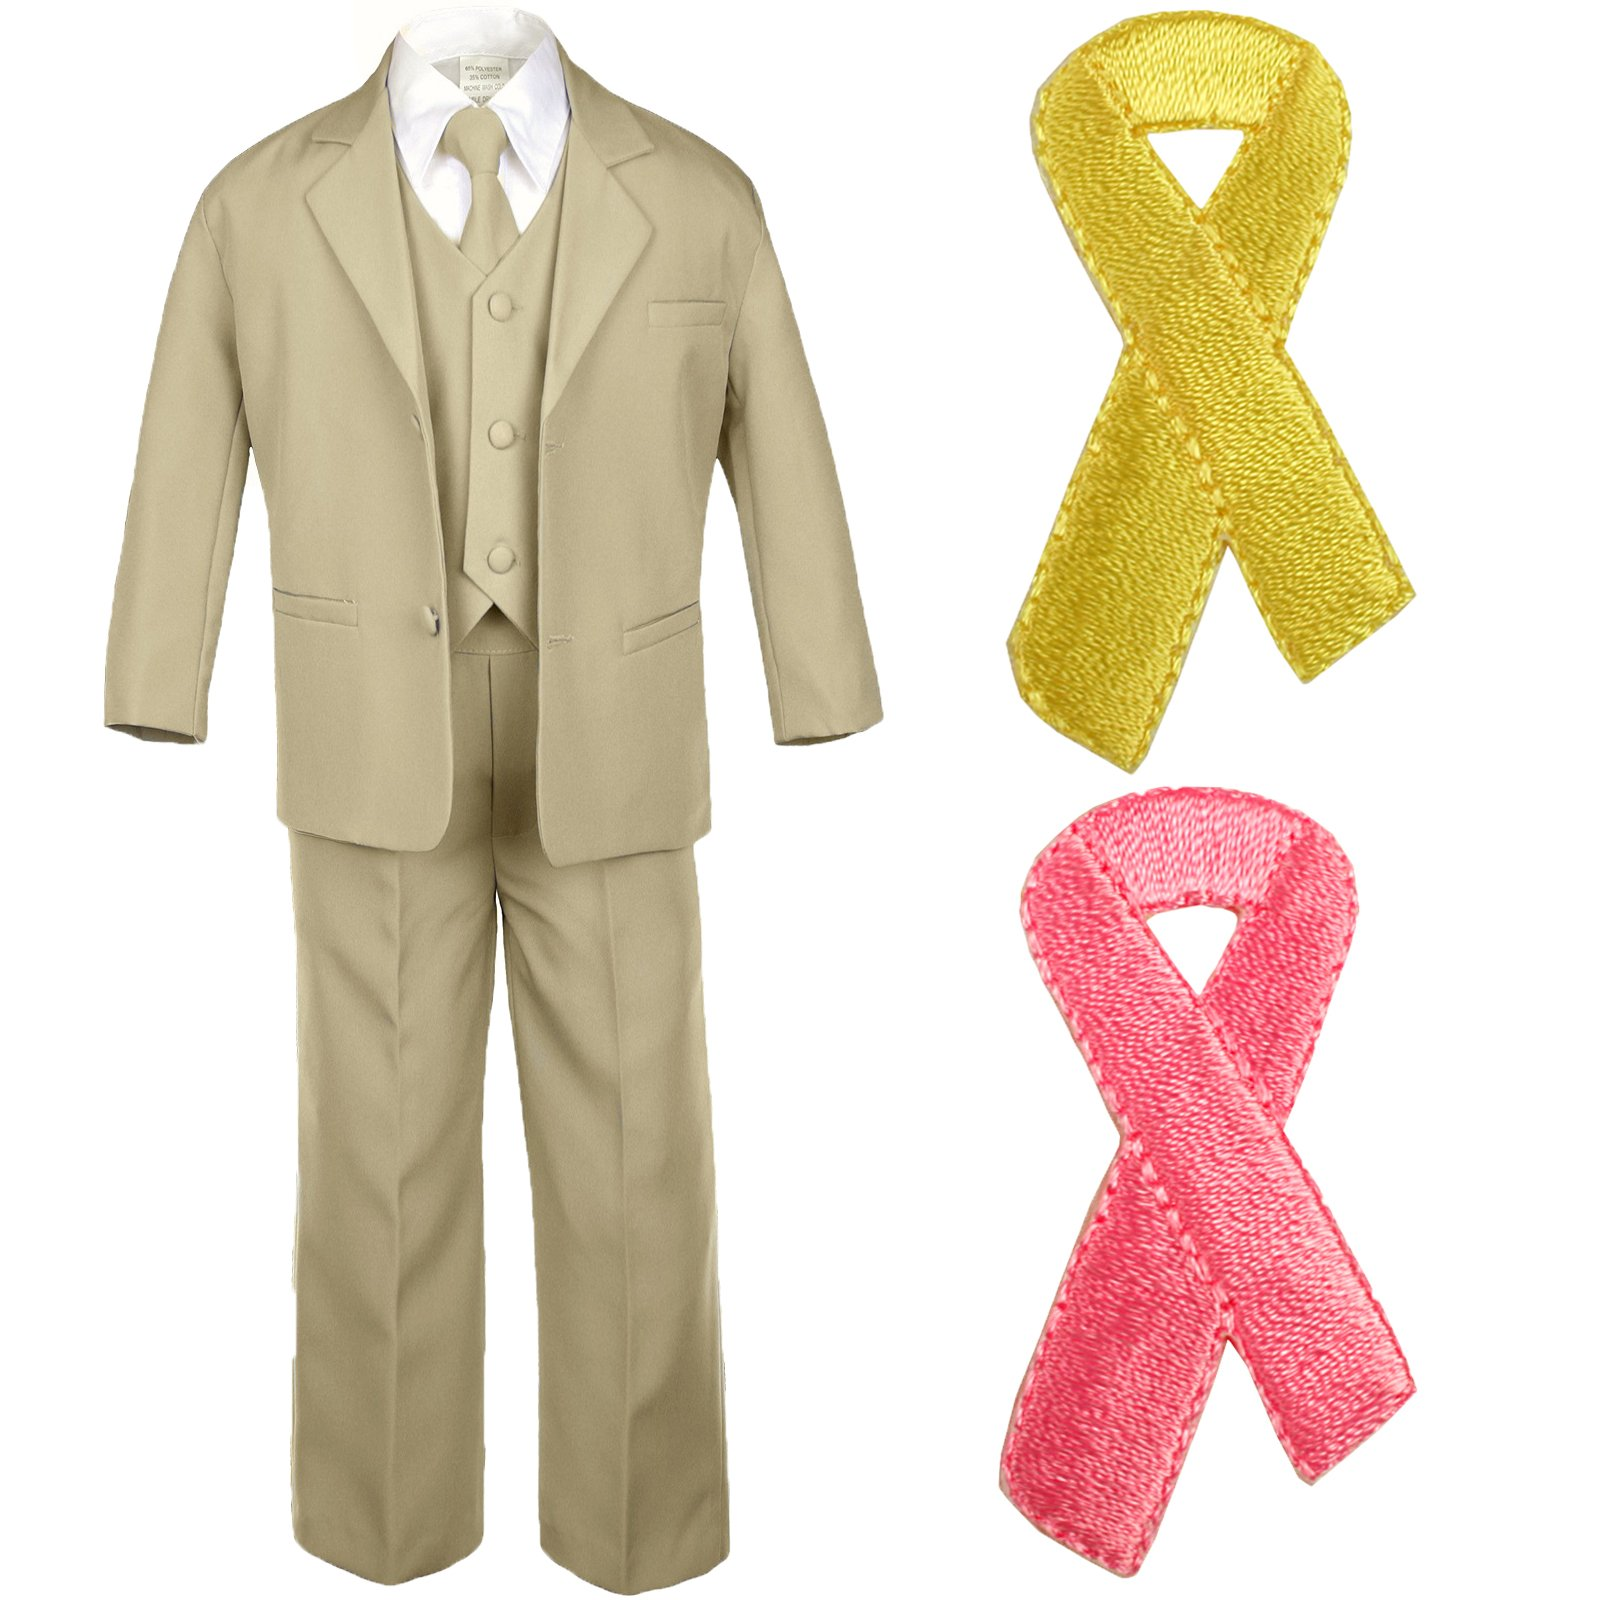 5pc Baby Boy Teen KHAKI SUIT w/ Cancer Awareness Ribbon Adhesive LOVE HOPE Patch (4T, 5pc Khaki suit set Only)